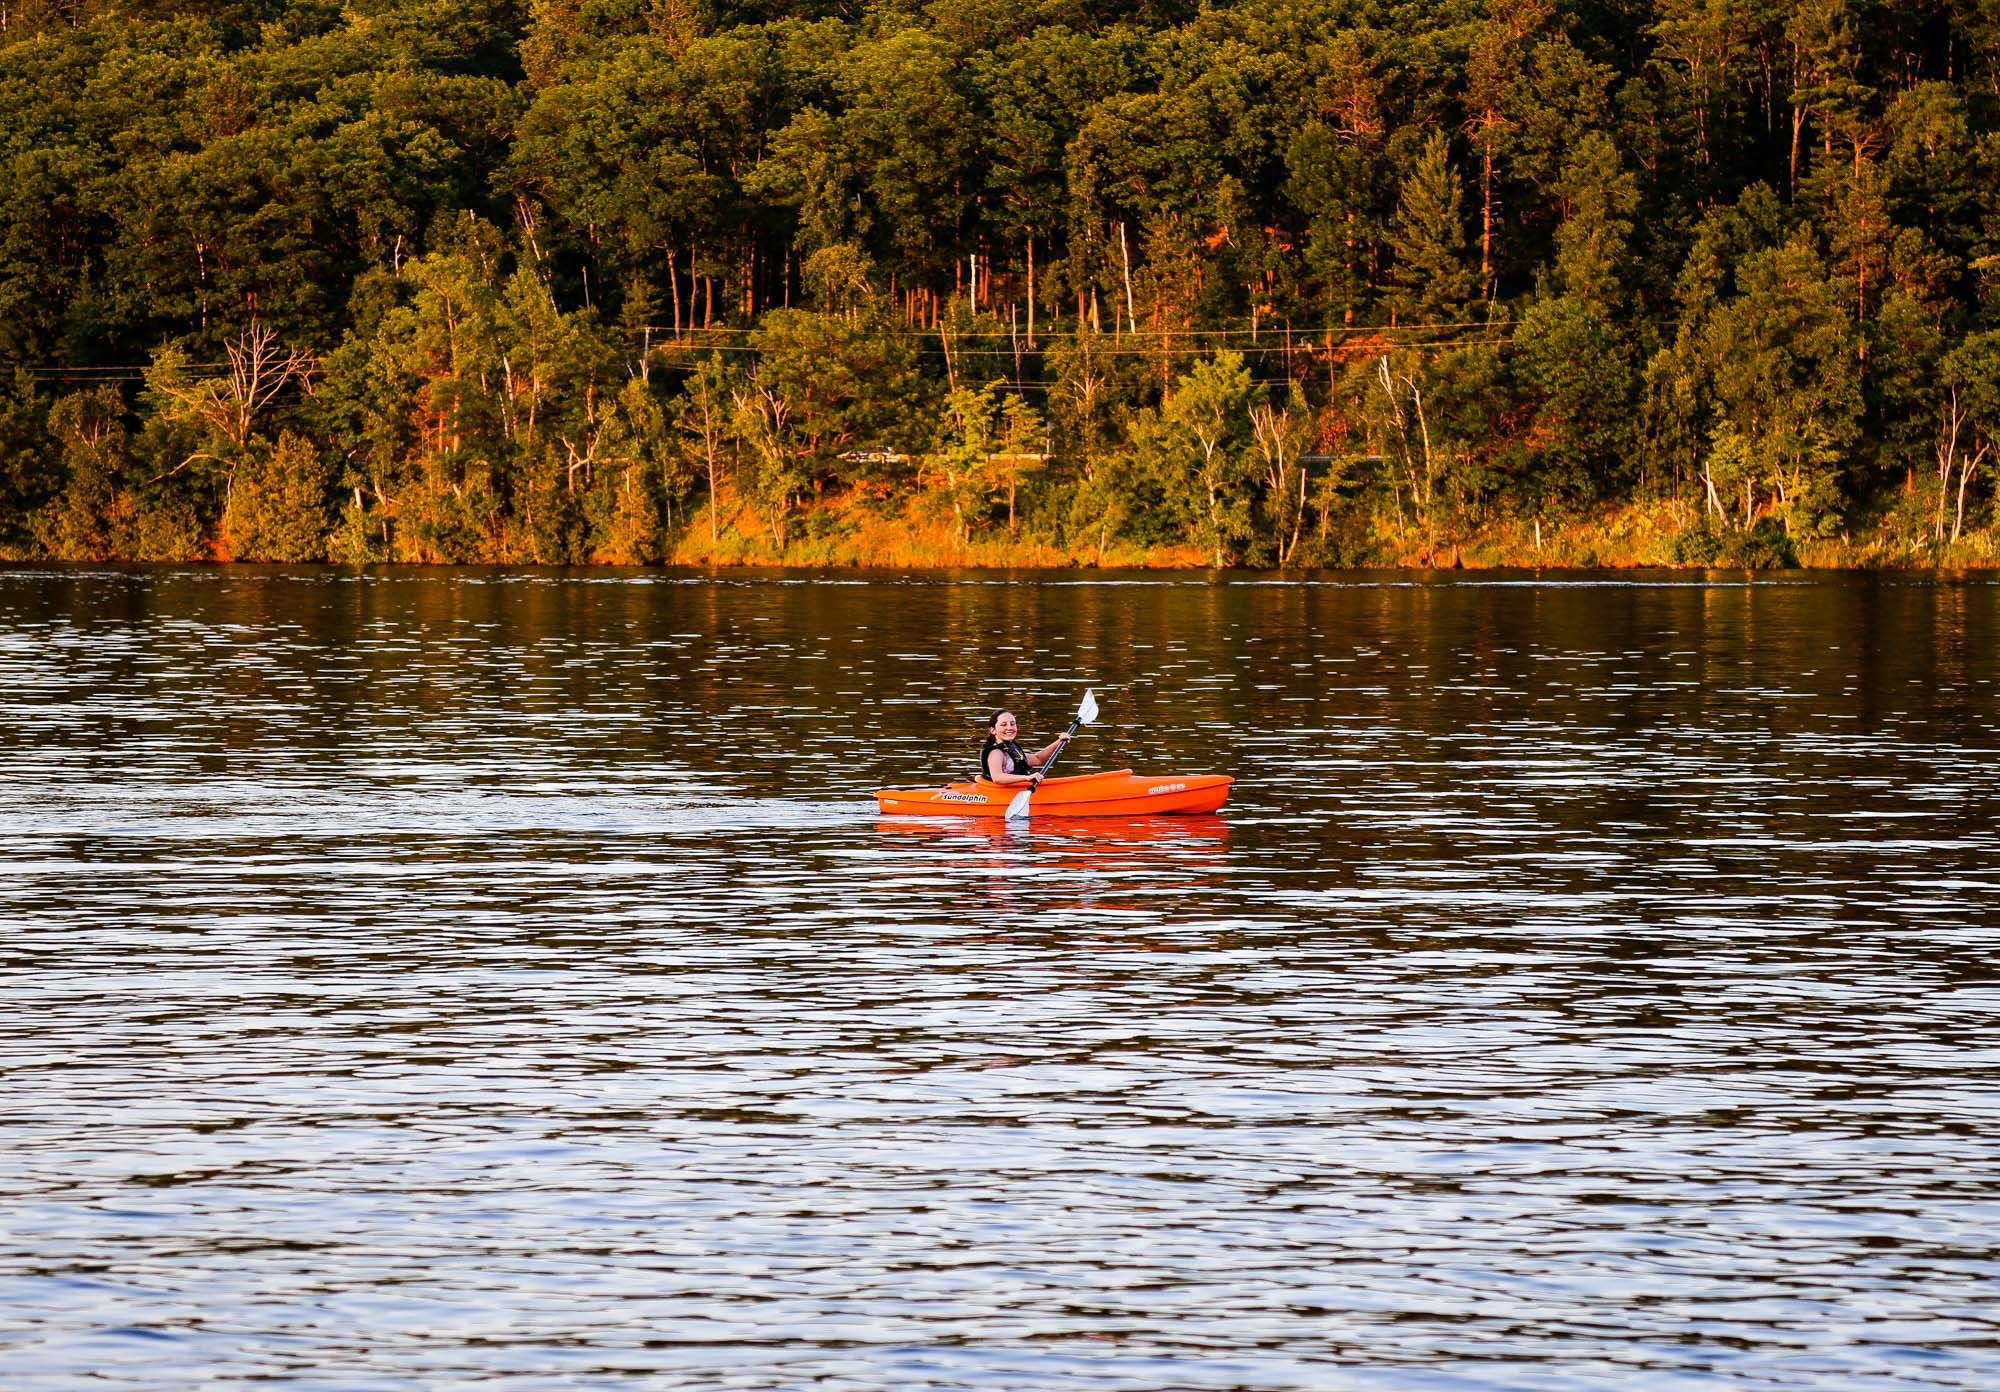 Kayaking at the Wilderness Resort in Lac La Belle Michigan